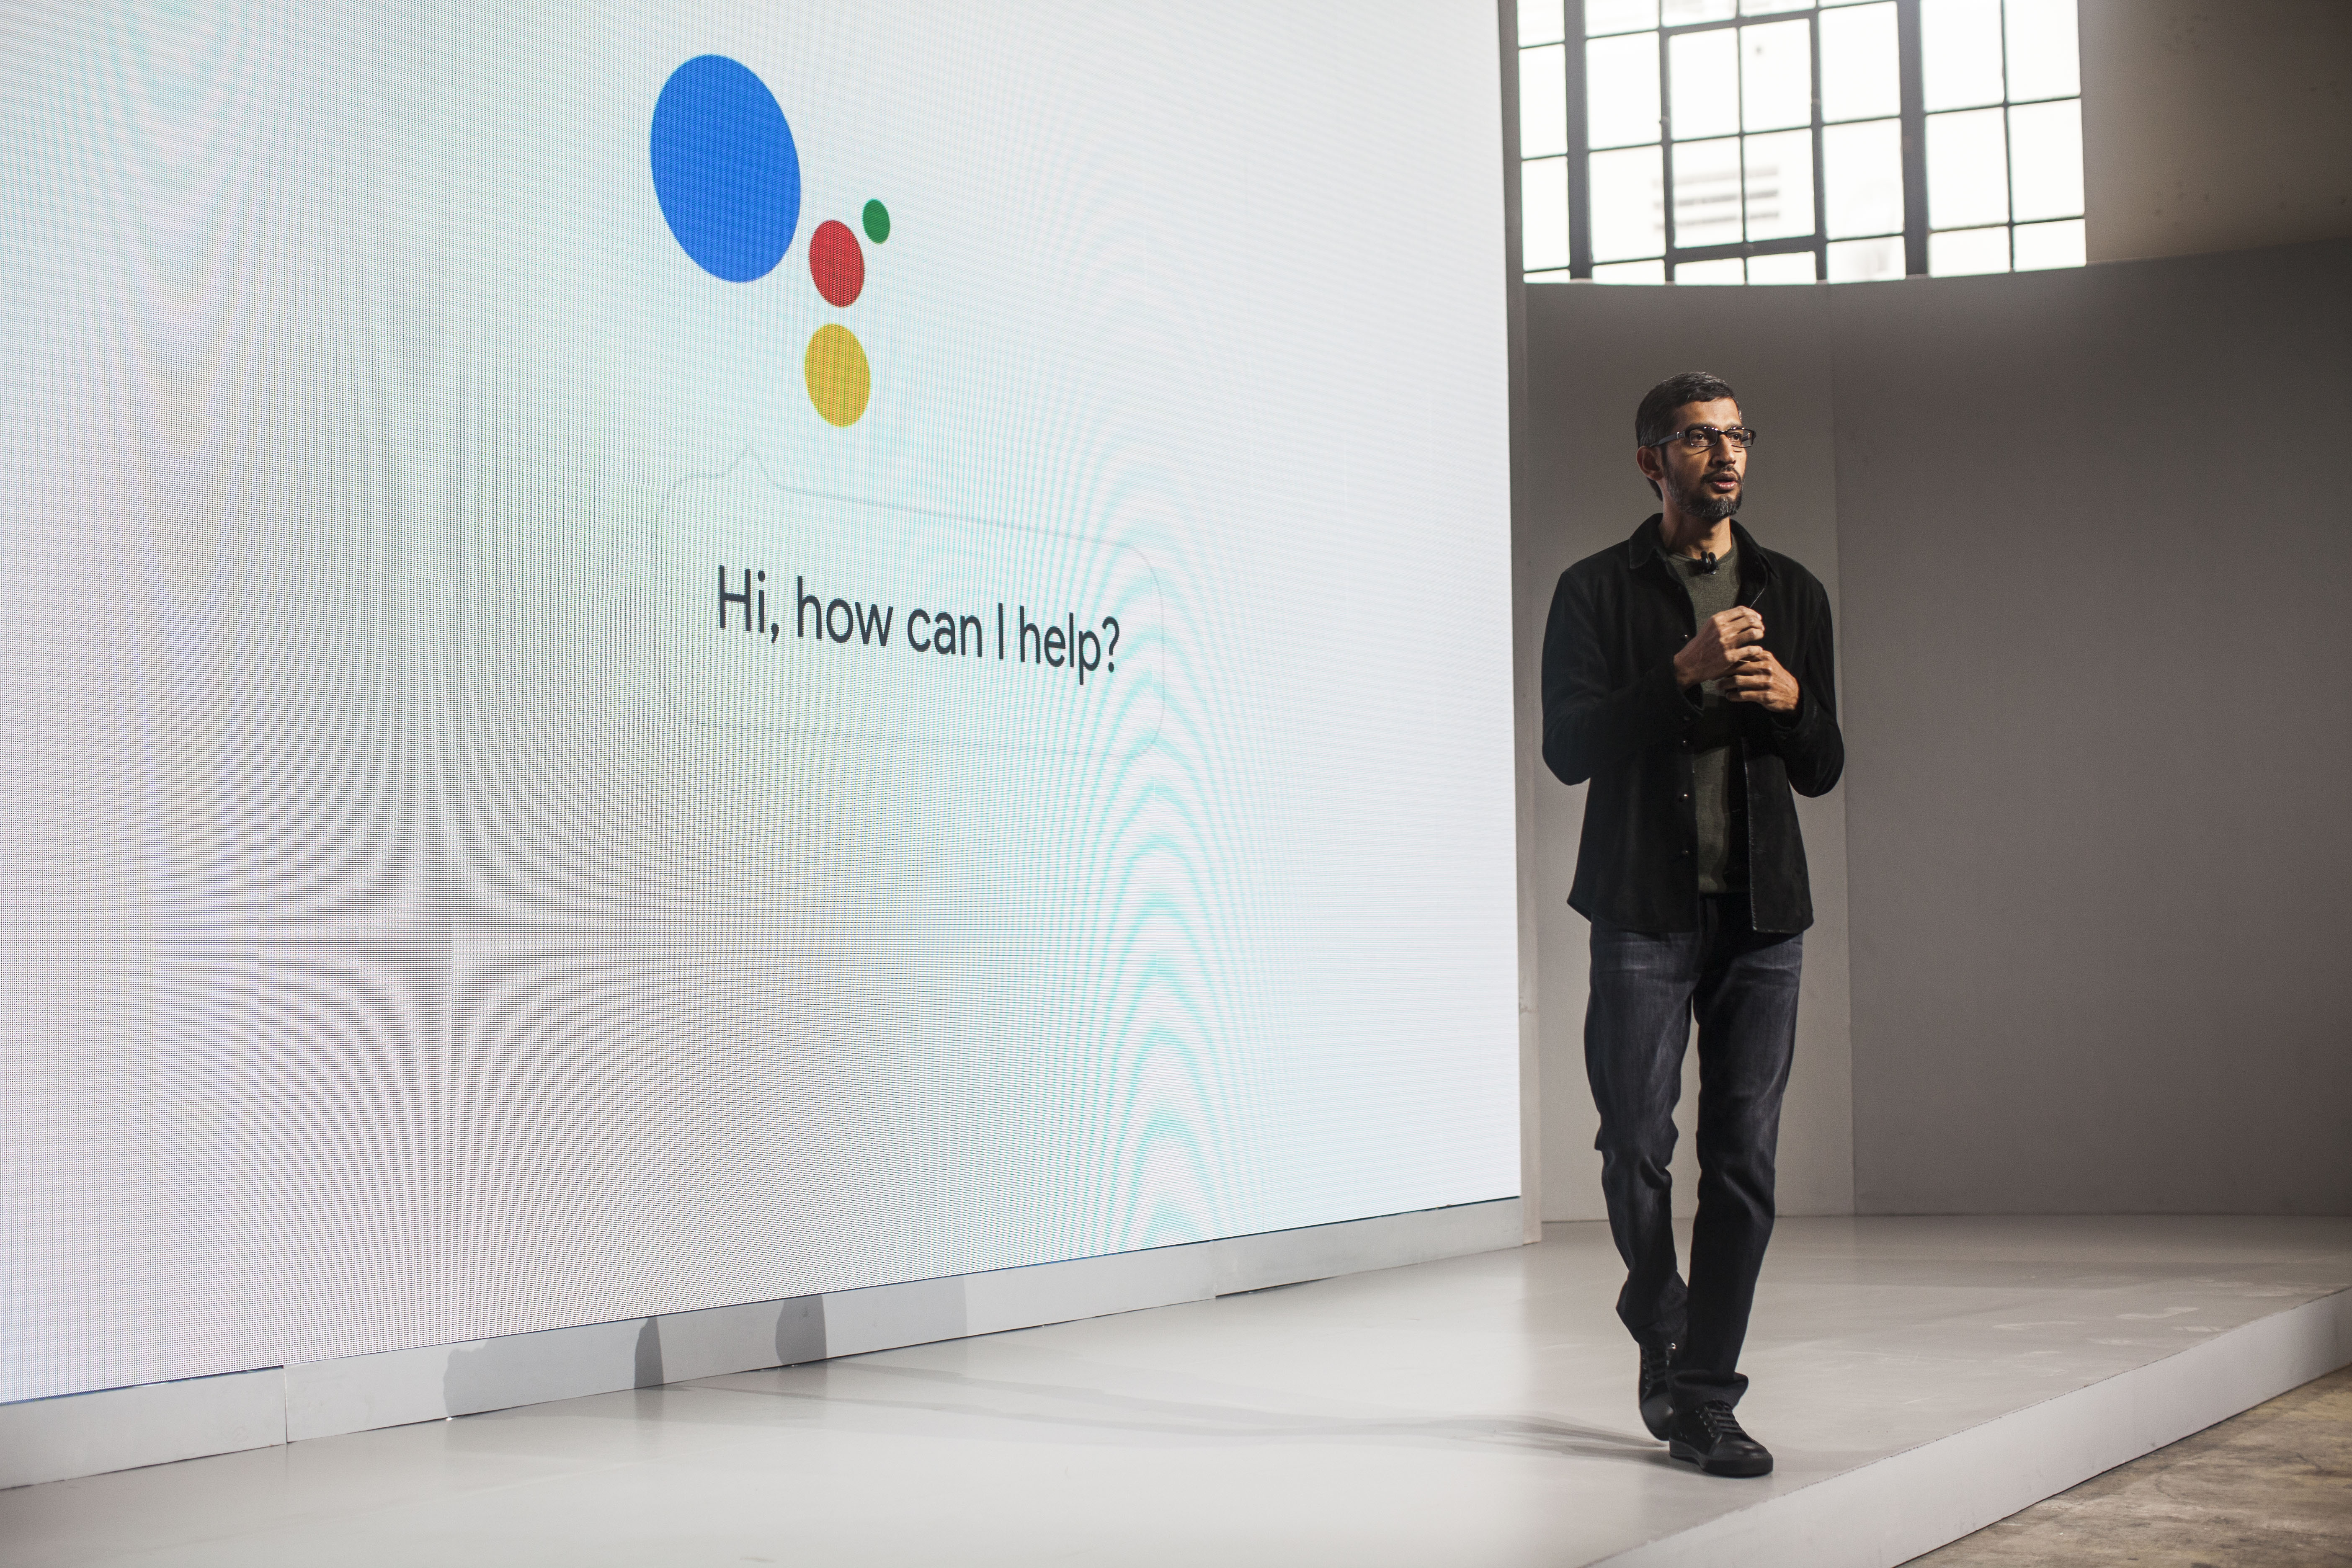 Pichai Sundararajan, known as Sundar Pichai, CEO of Google Inc. speaks during an event to introduce Google Pixel phone and other Google products on October 4, 2016 in San Francisco, California.